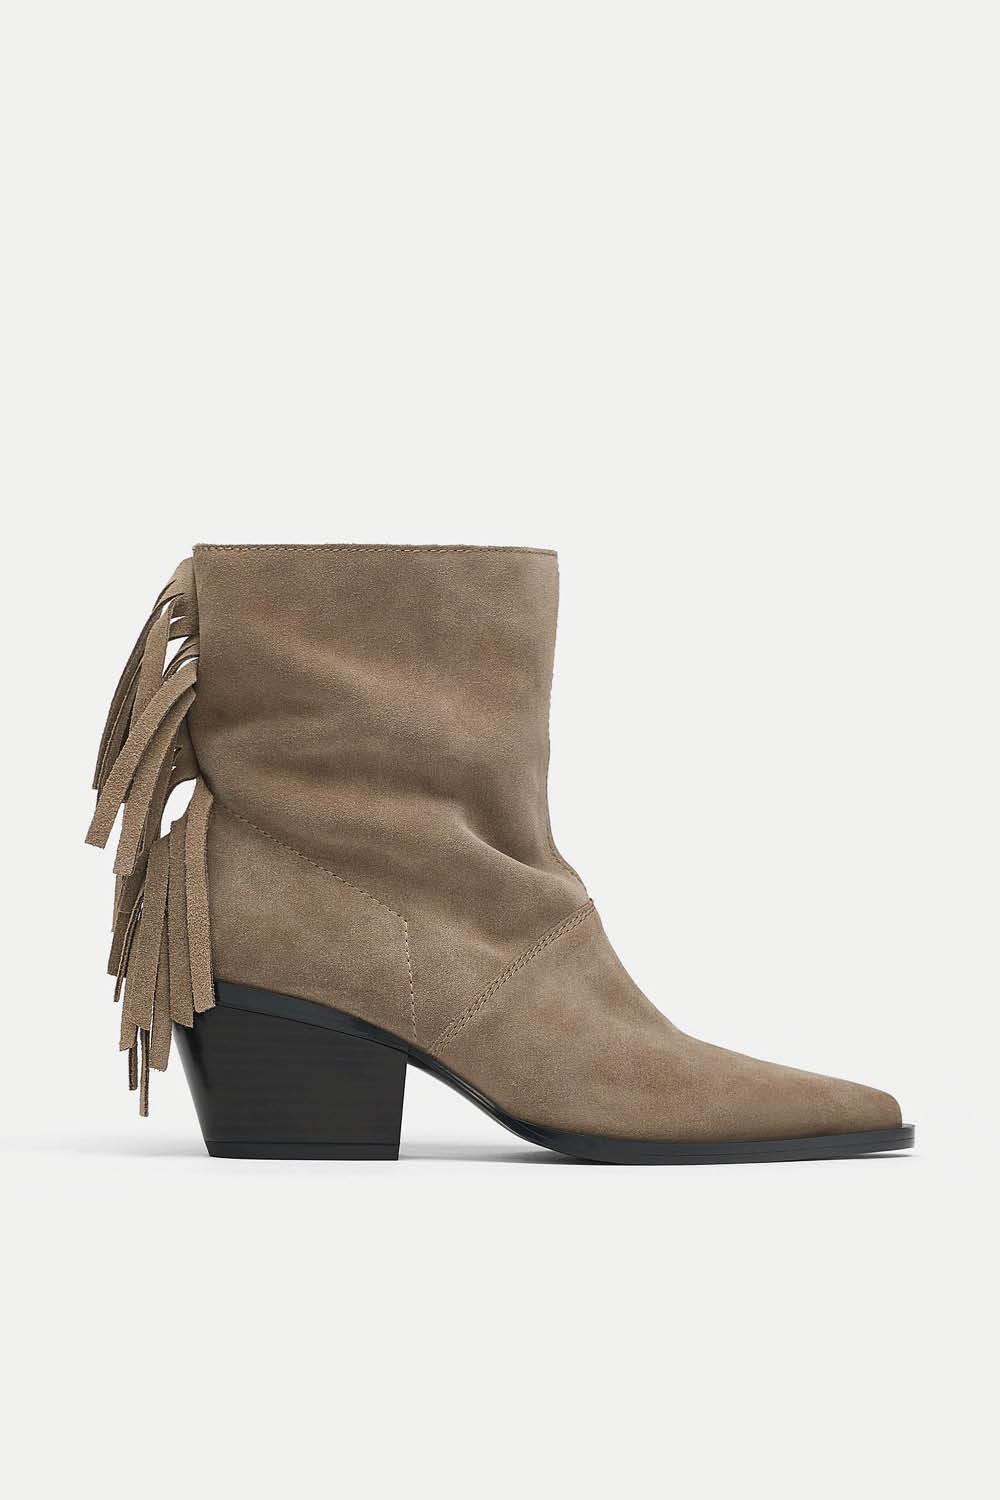 botin piel zara flecos 49,95 euros. This boots are made for walking